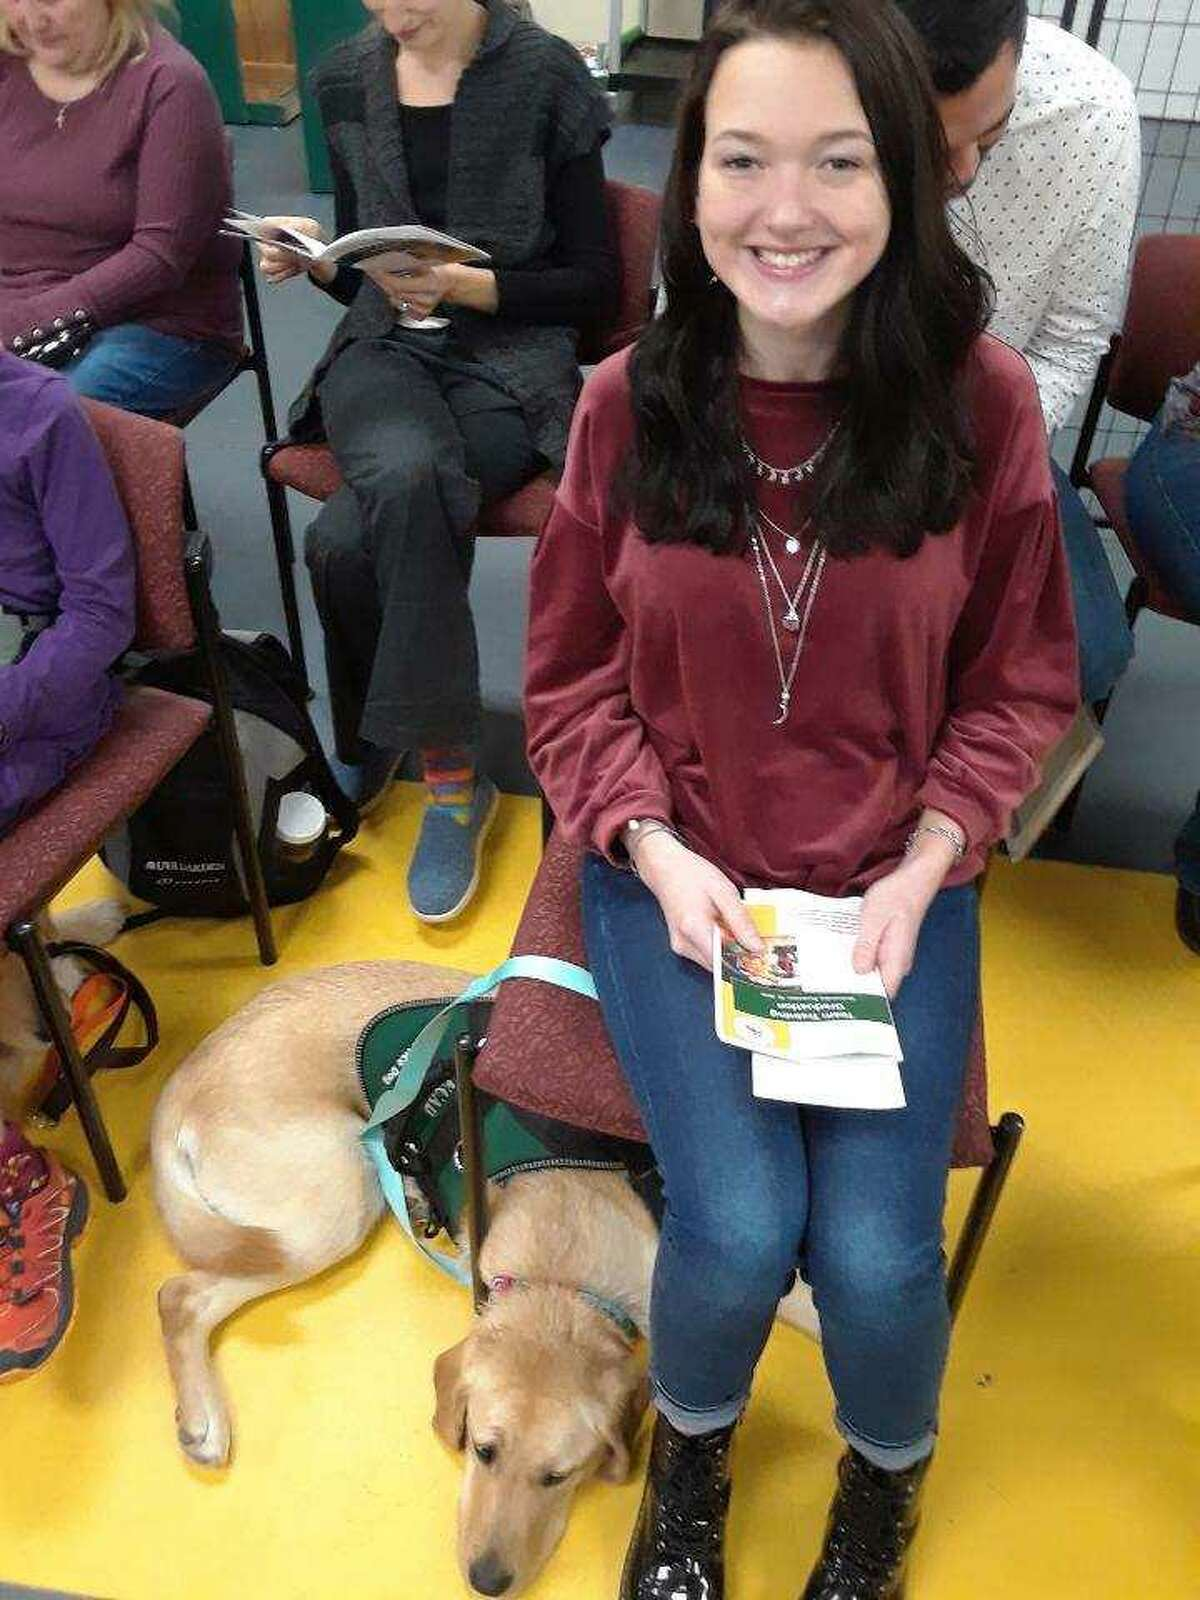 Grace Cutshall of North Carolina sits with her service dog Royale at ECAD, a non-profit organization in Winchester.